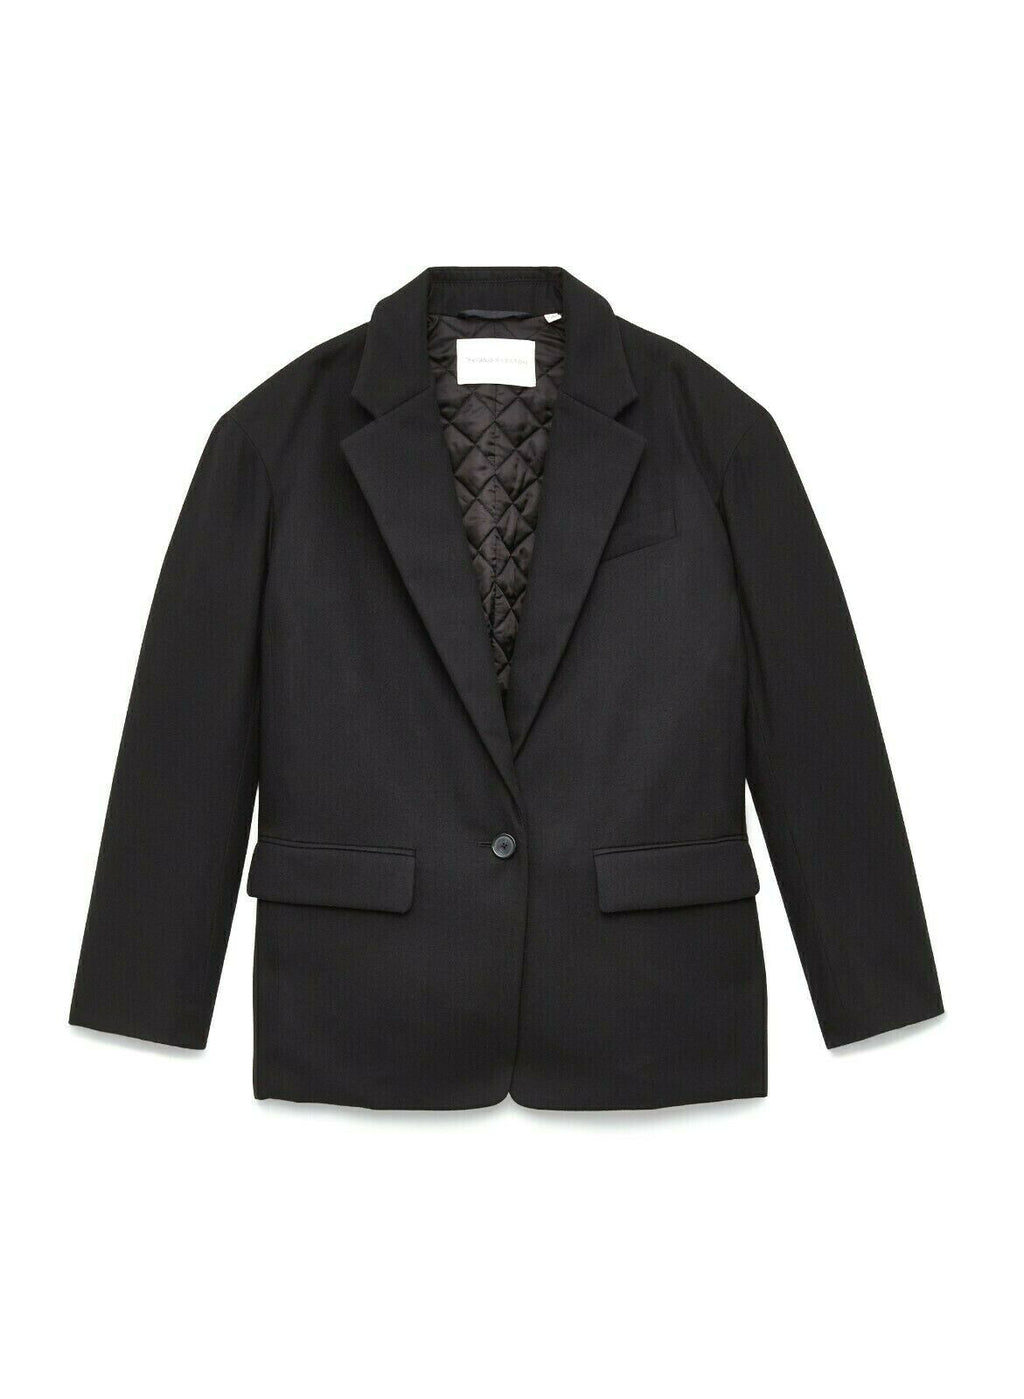 Aritzia The Group by Babaton Womens Size 2 Medium Black Blazer Demings Jacket